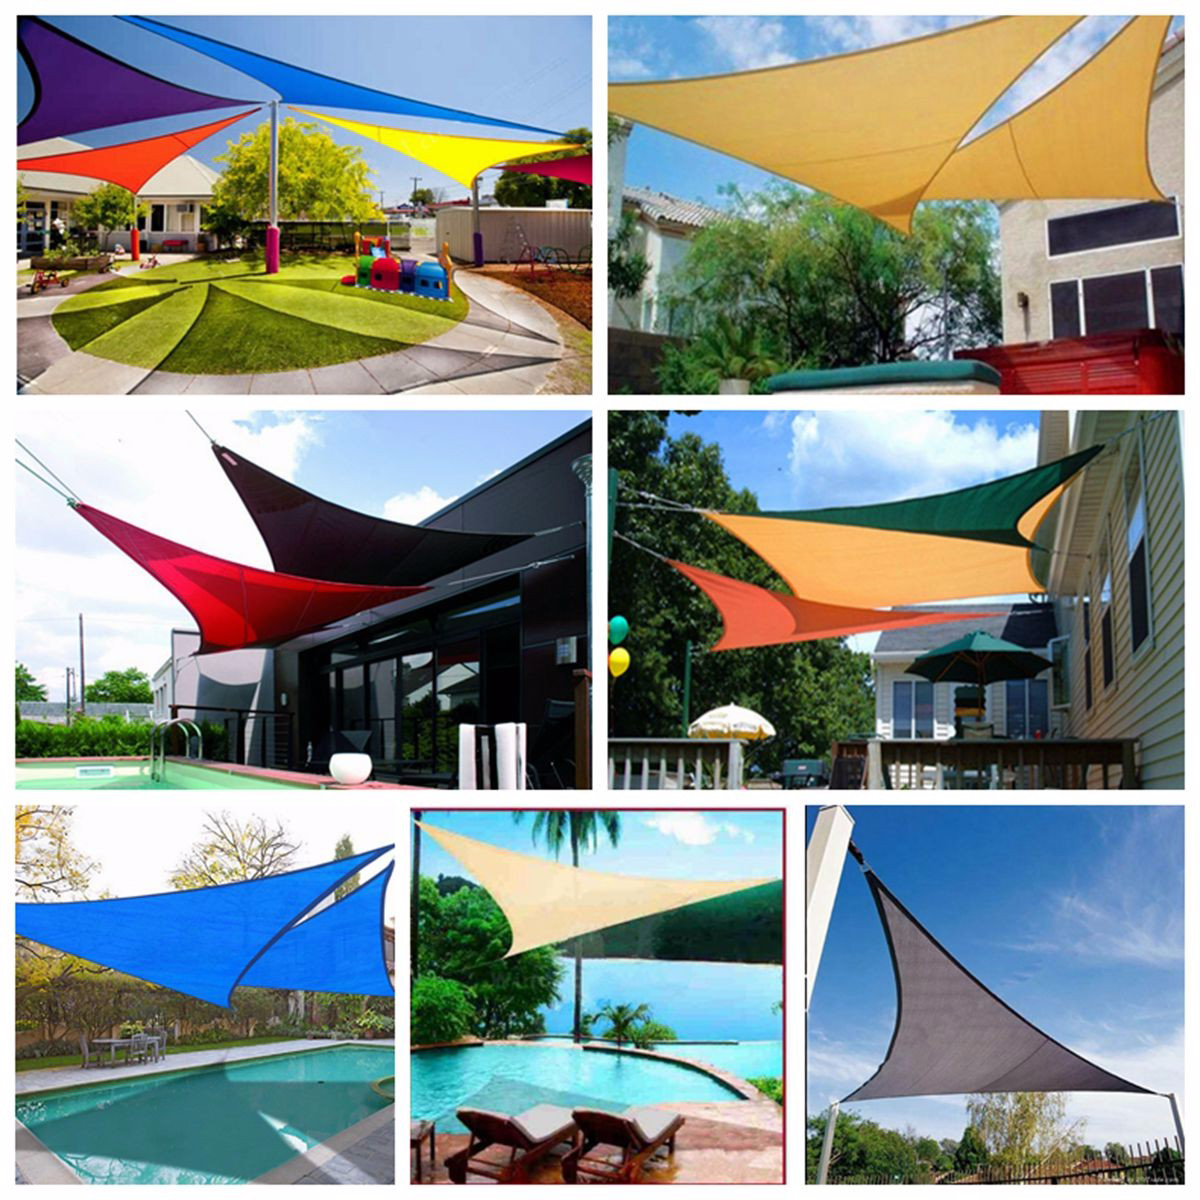 300D 160GSM Square Sun Shade Sail Garden Patio Awning Canopy Sunscreen UV Block Outdoor Camping